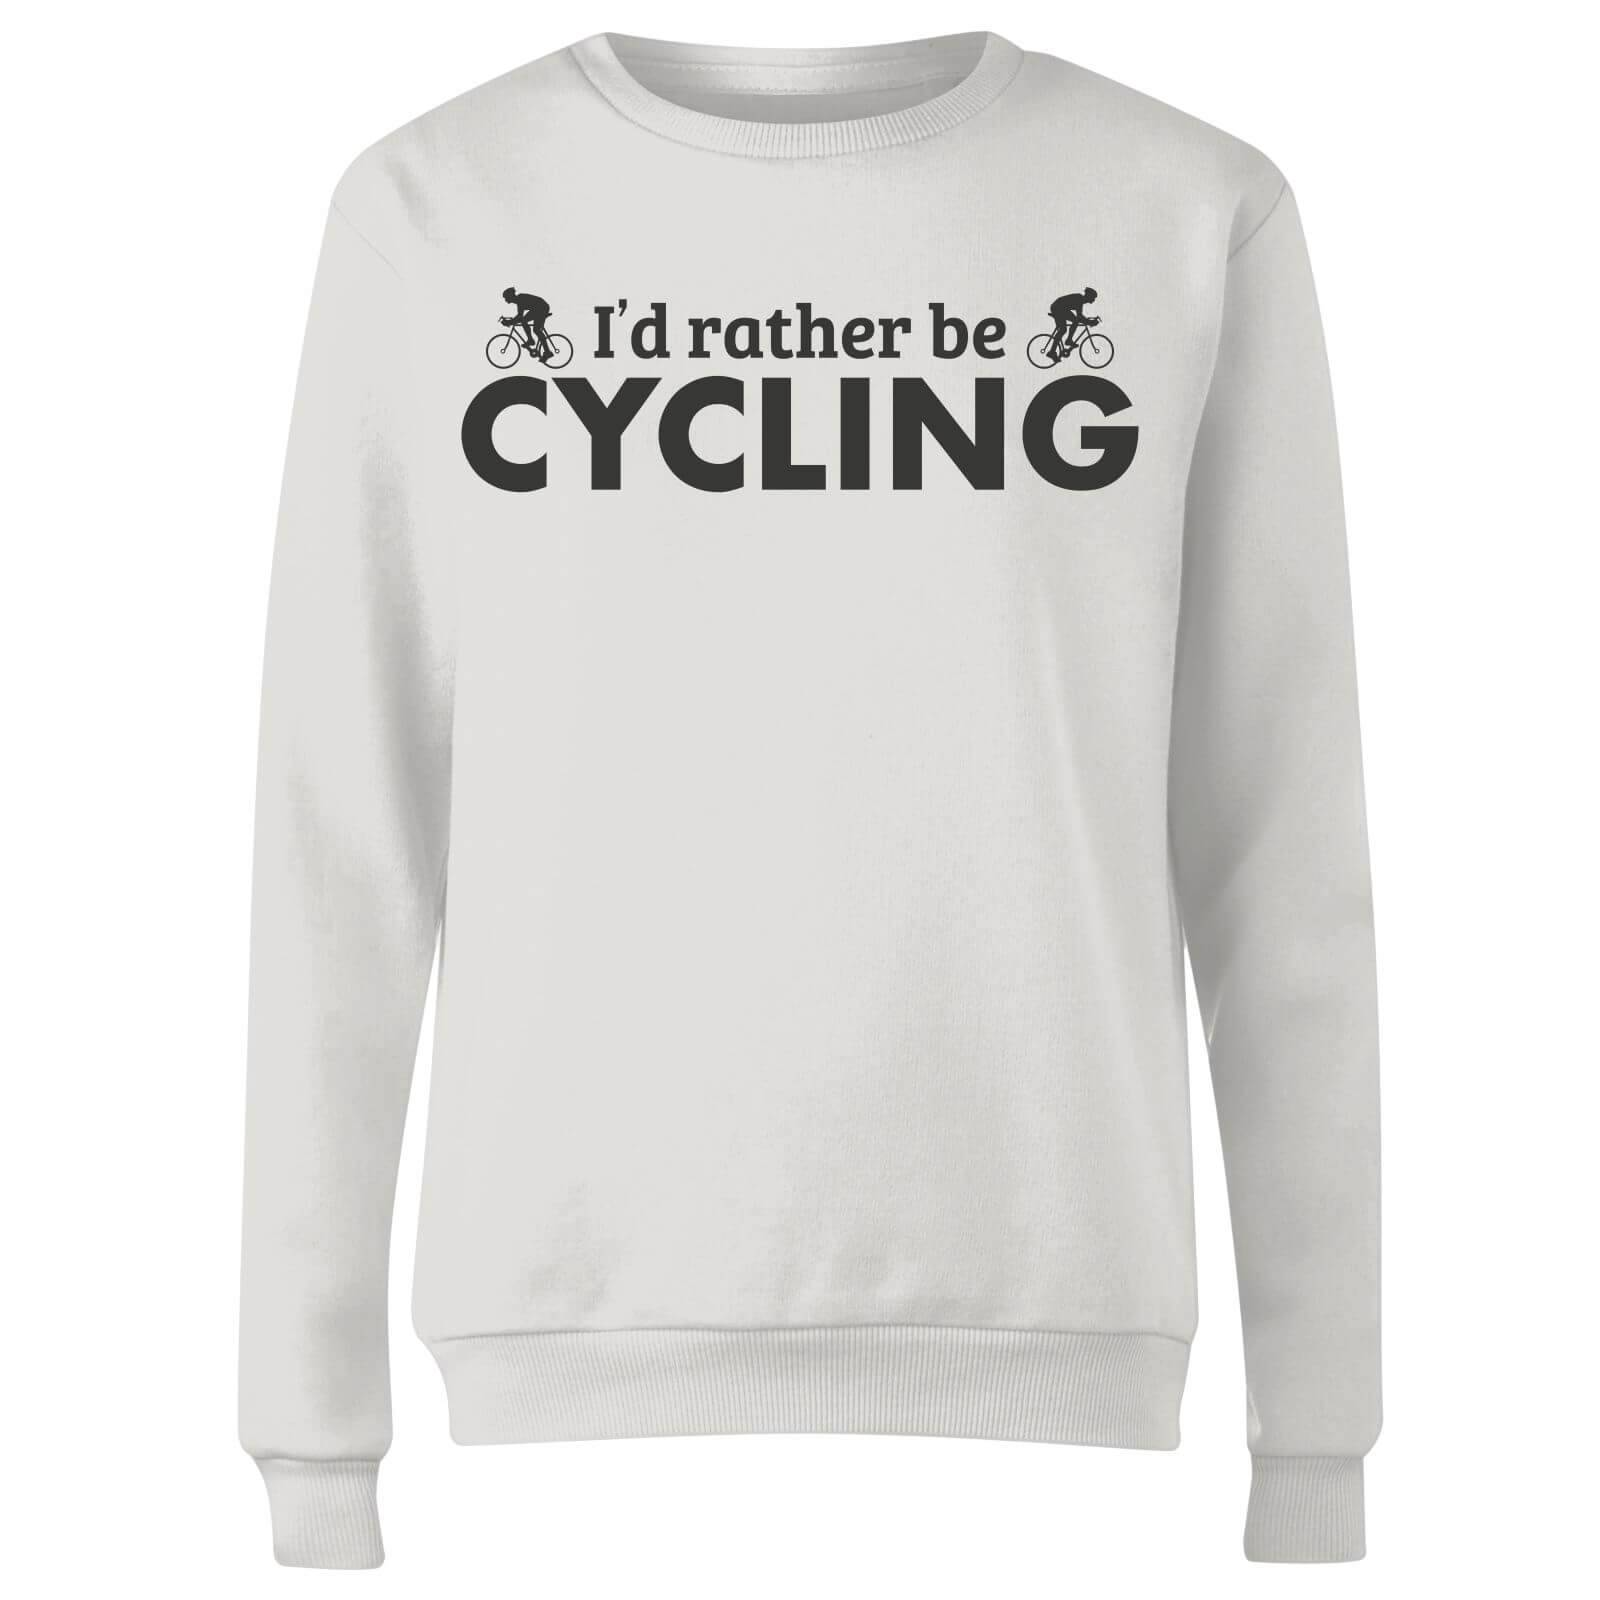 The Dad Collection I'd Rather be Cycling Women's Sweatshirt - White - M - Blanc